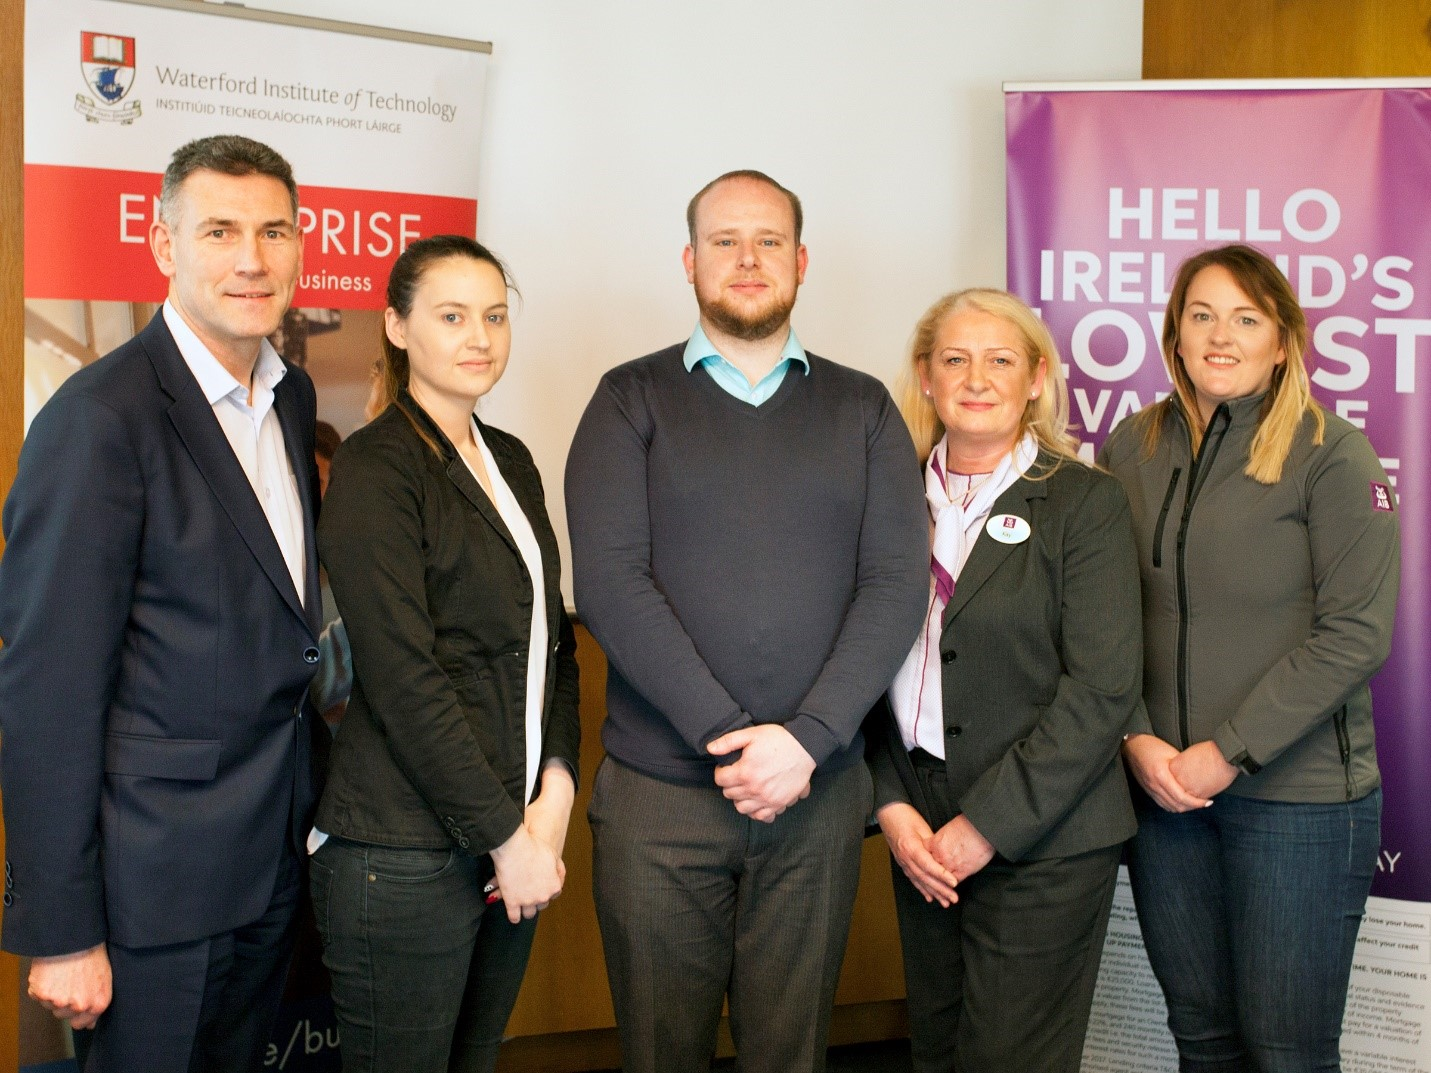 Photo: (Left to right) Eugene Crehan WIT, Aisling Dunne, William Wall, Kay Ruddle AIB, Marion Fewer, AIB.